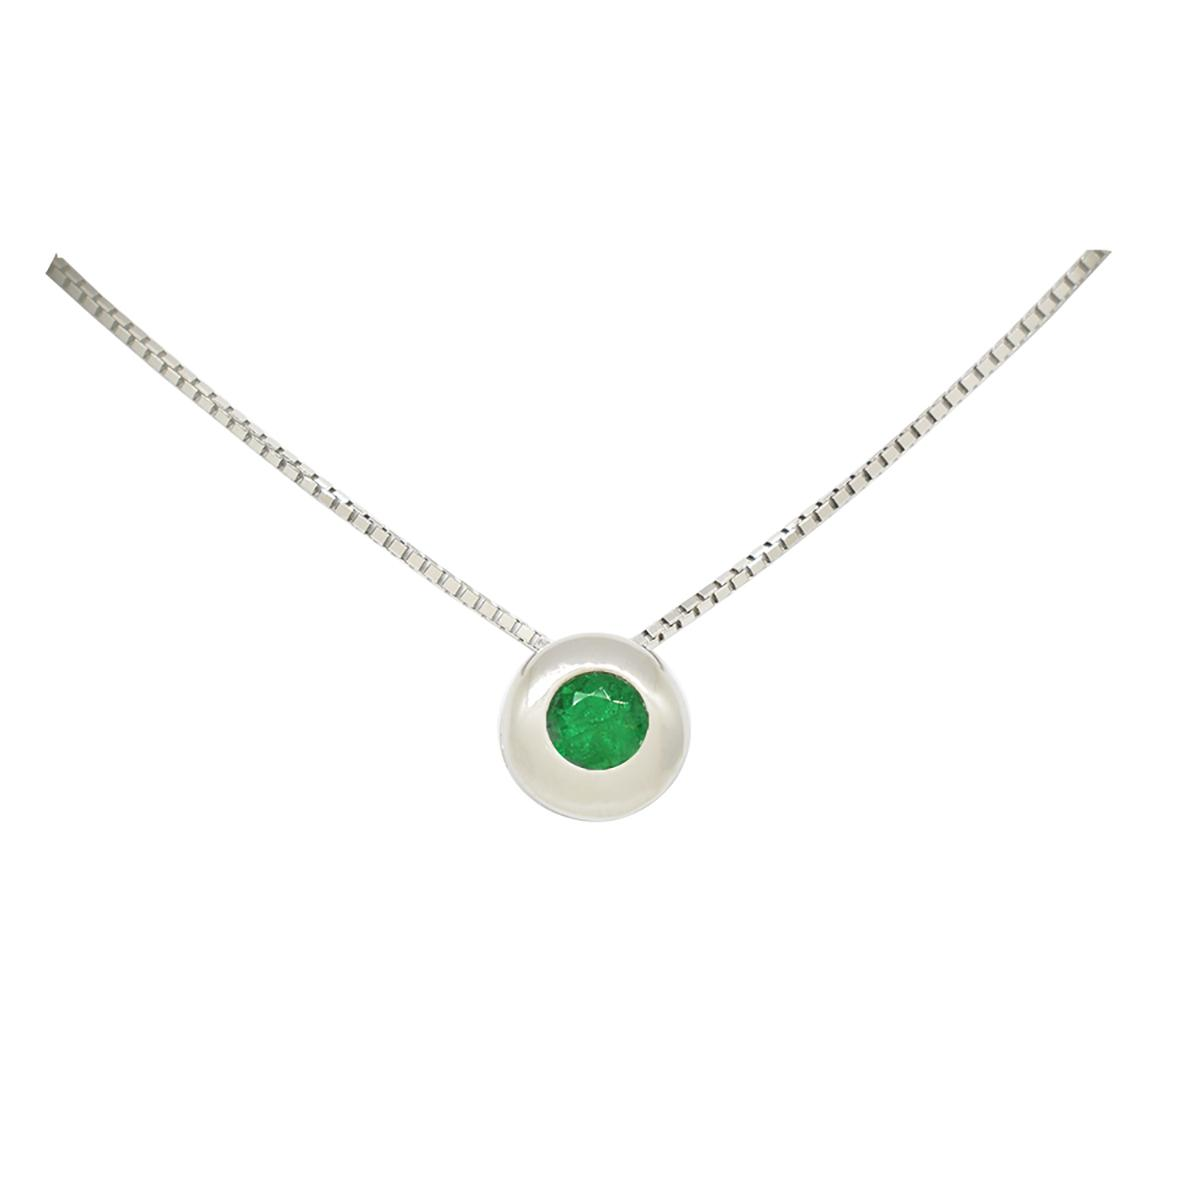 solitaire-emerald-necklace-in-18k-white-gold-with-round-emerald